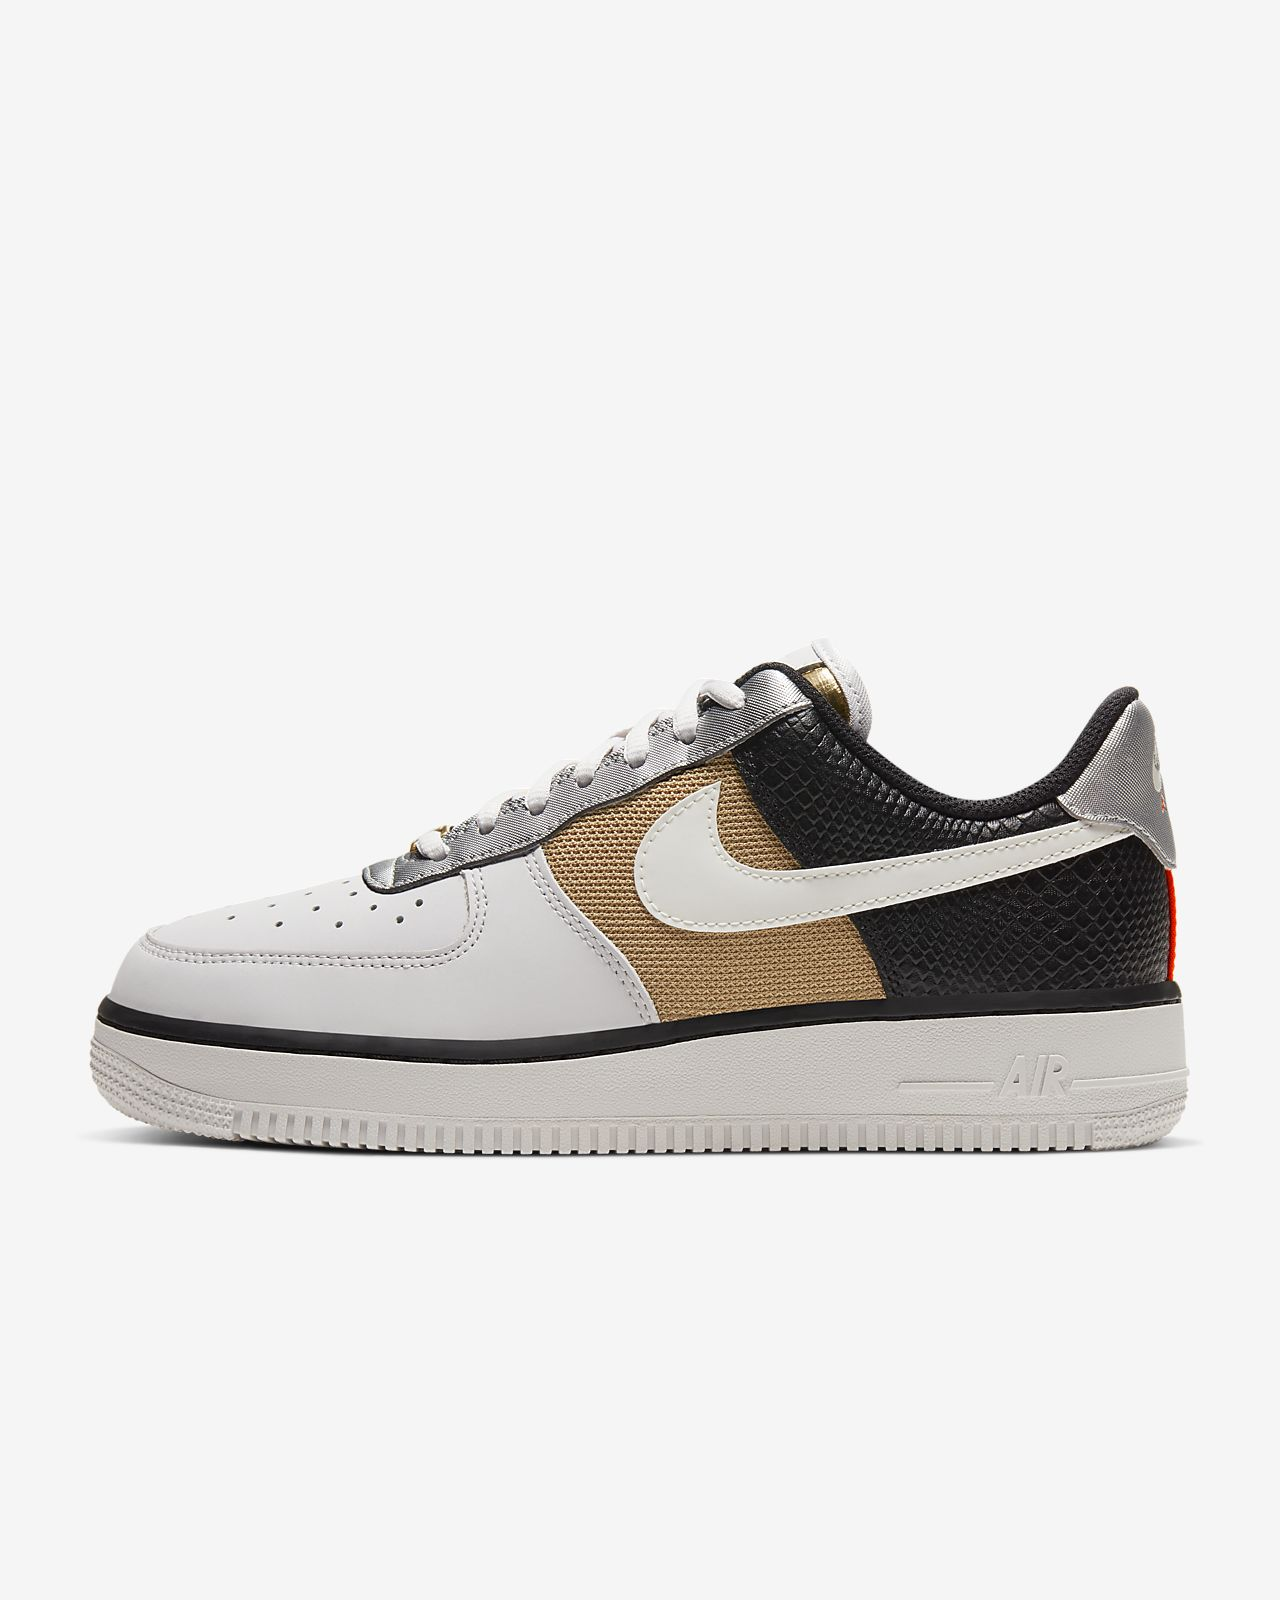 Buty damskie Nike Air Force 1 '07